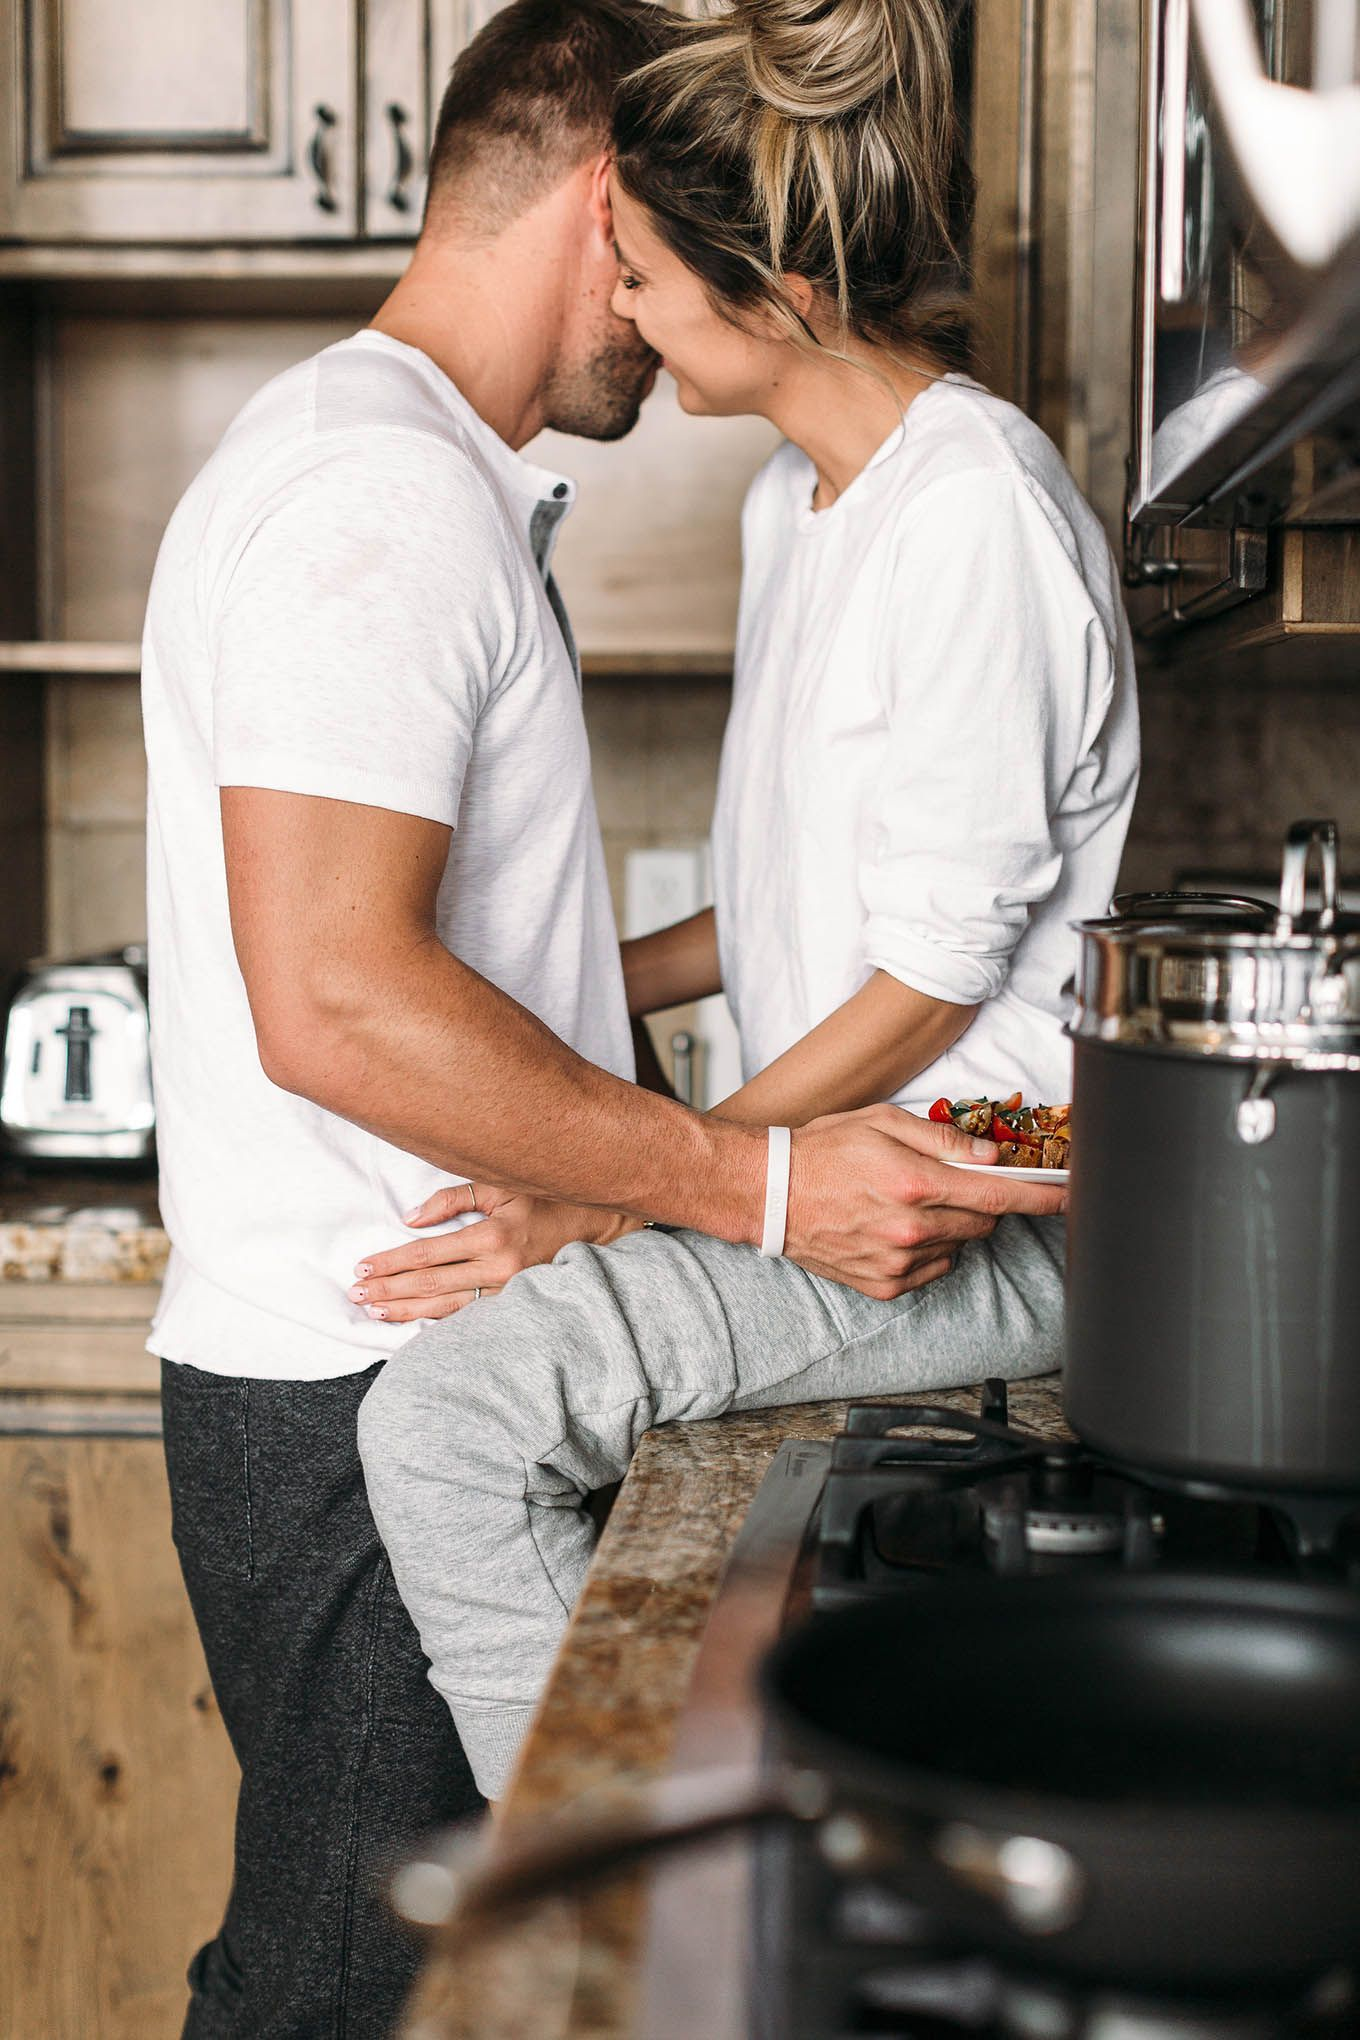 7 Fun Ideas For A Date Night At Home